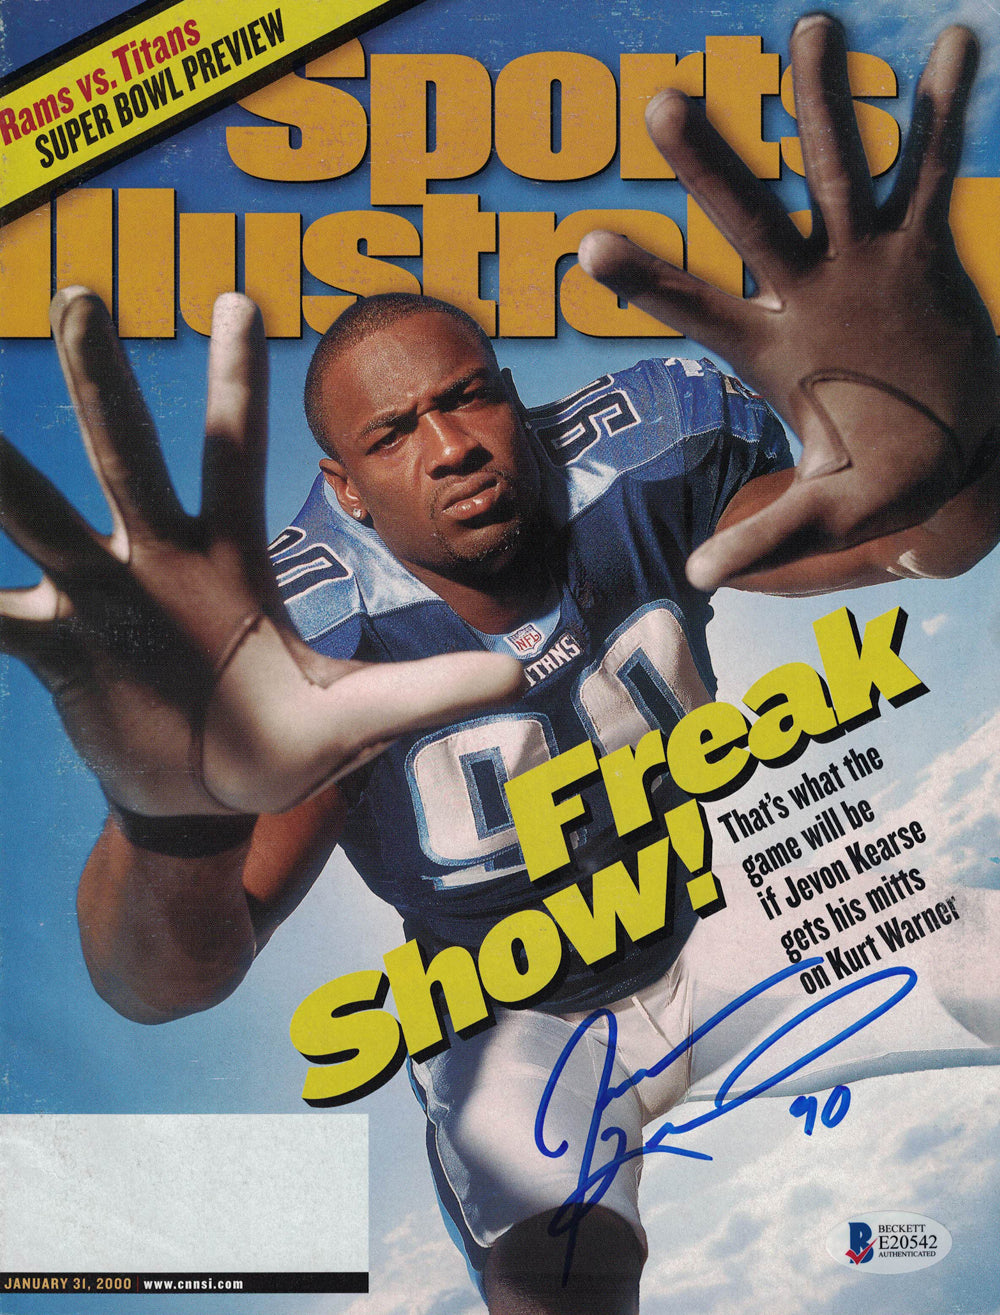 Jevon Kearse Signed Tennessee Titans Sports Illustrated 1/31/2000 BAS PSM